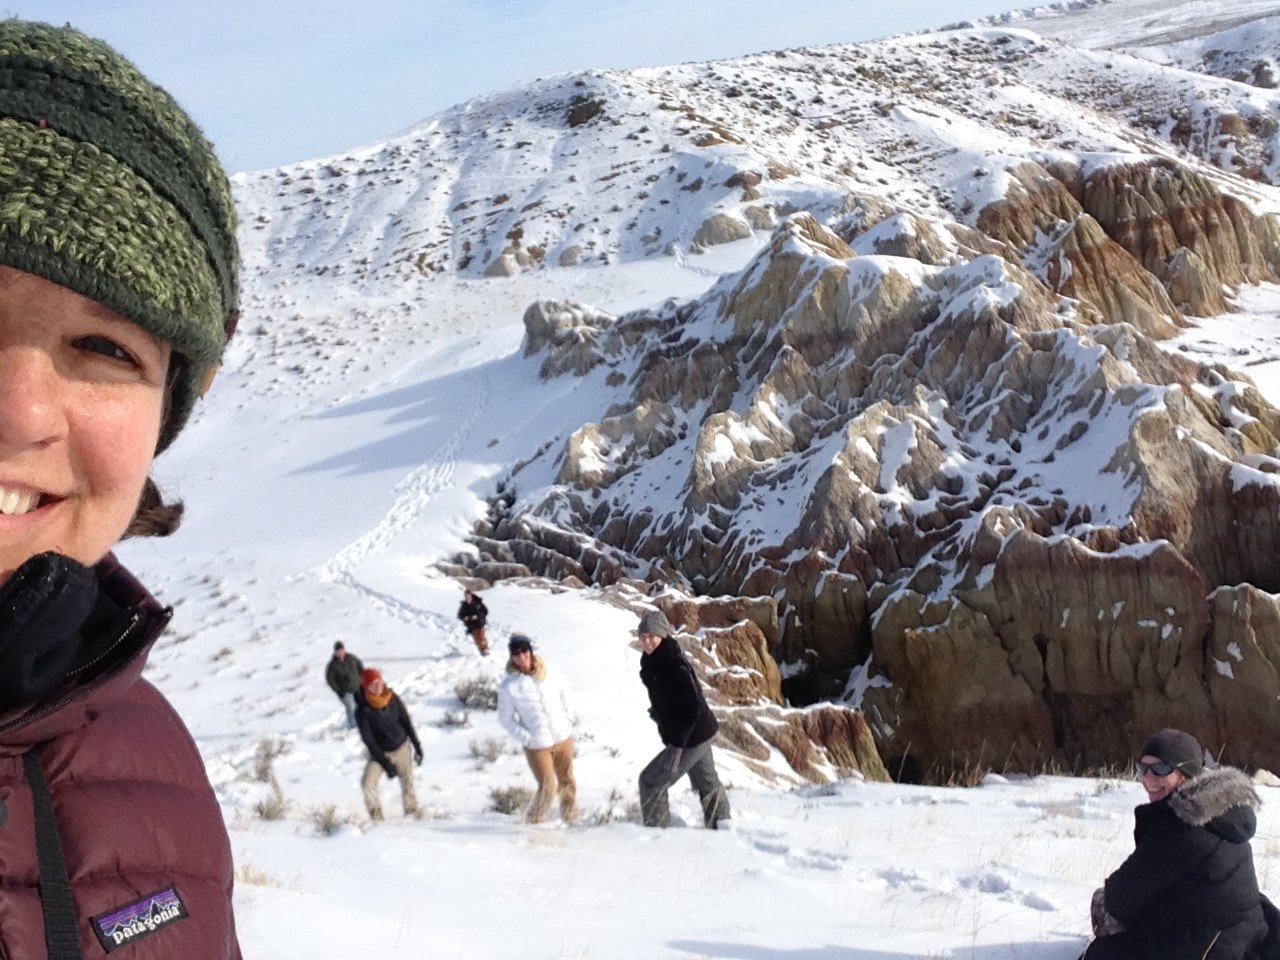 Hiking in the badlands 2015